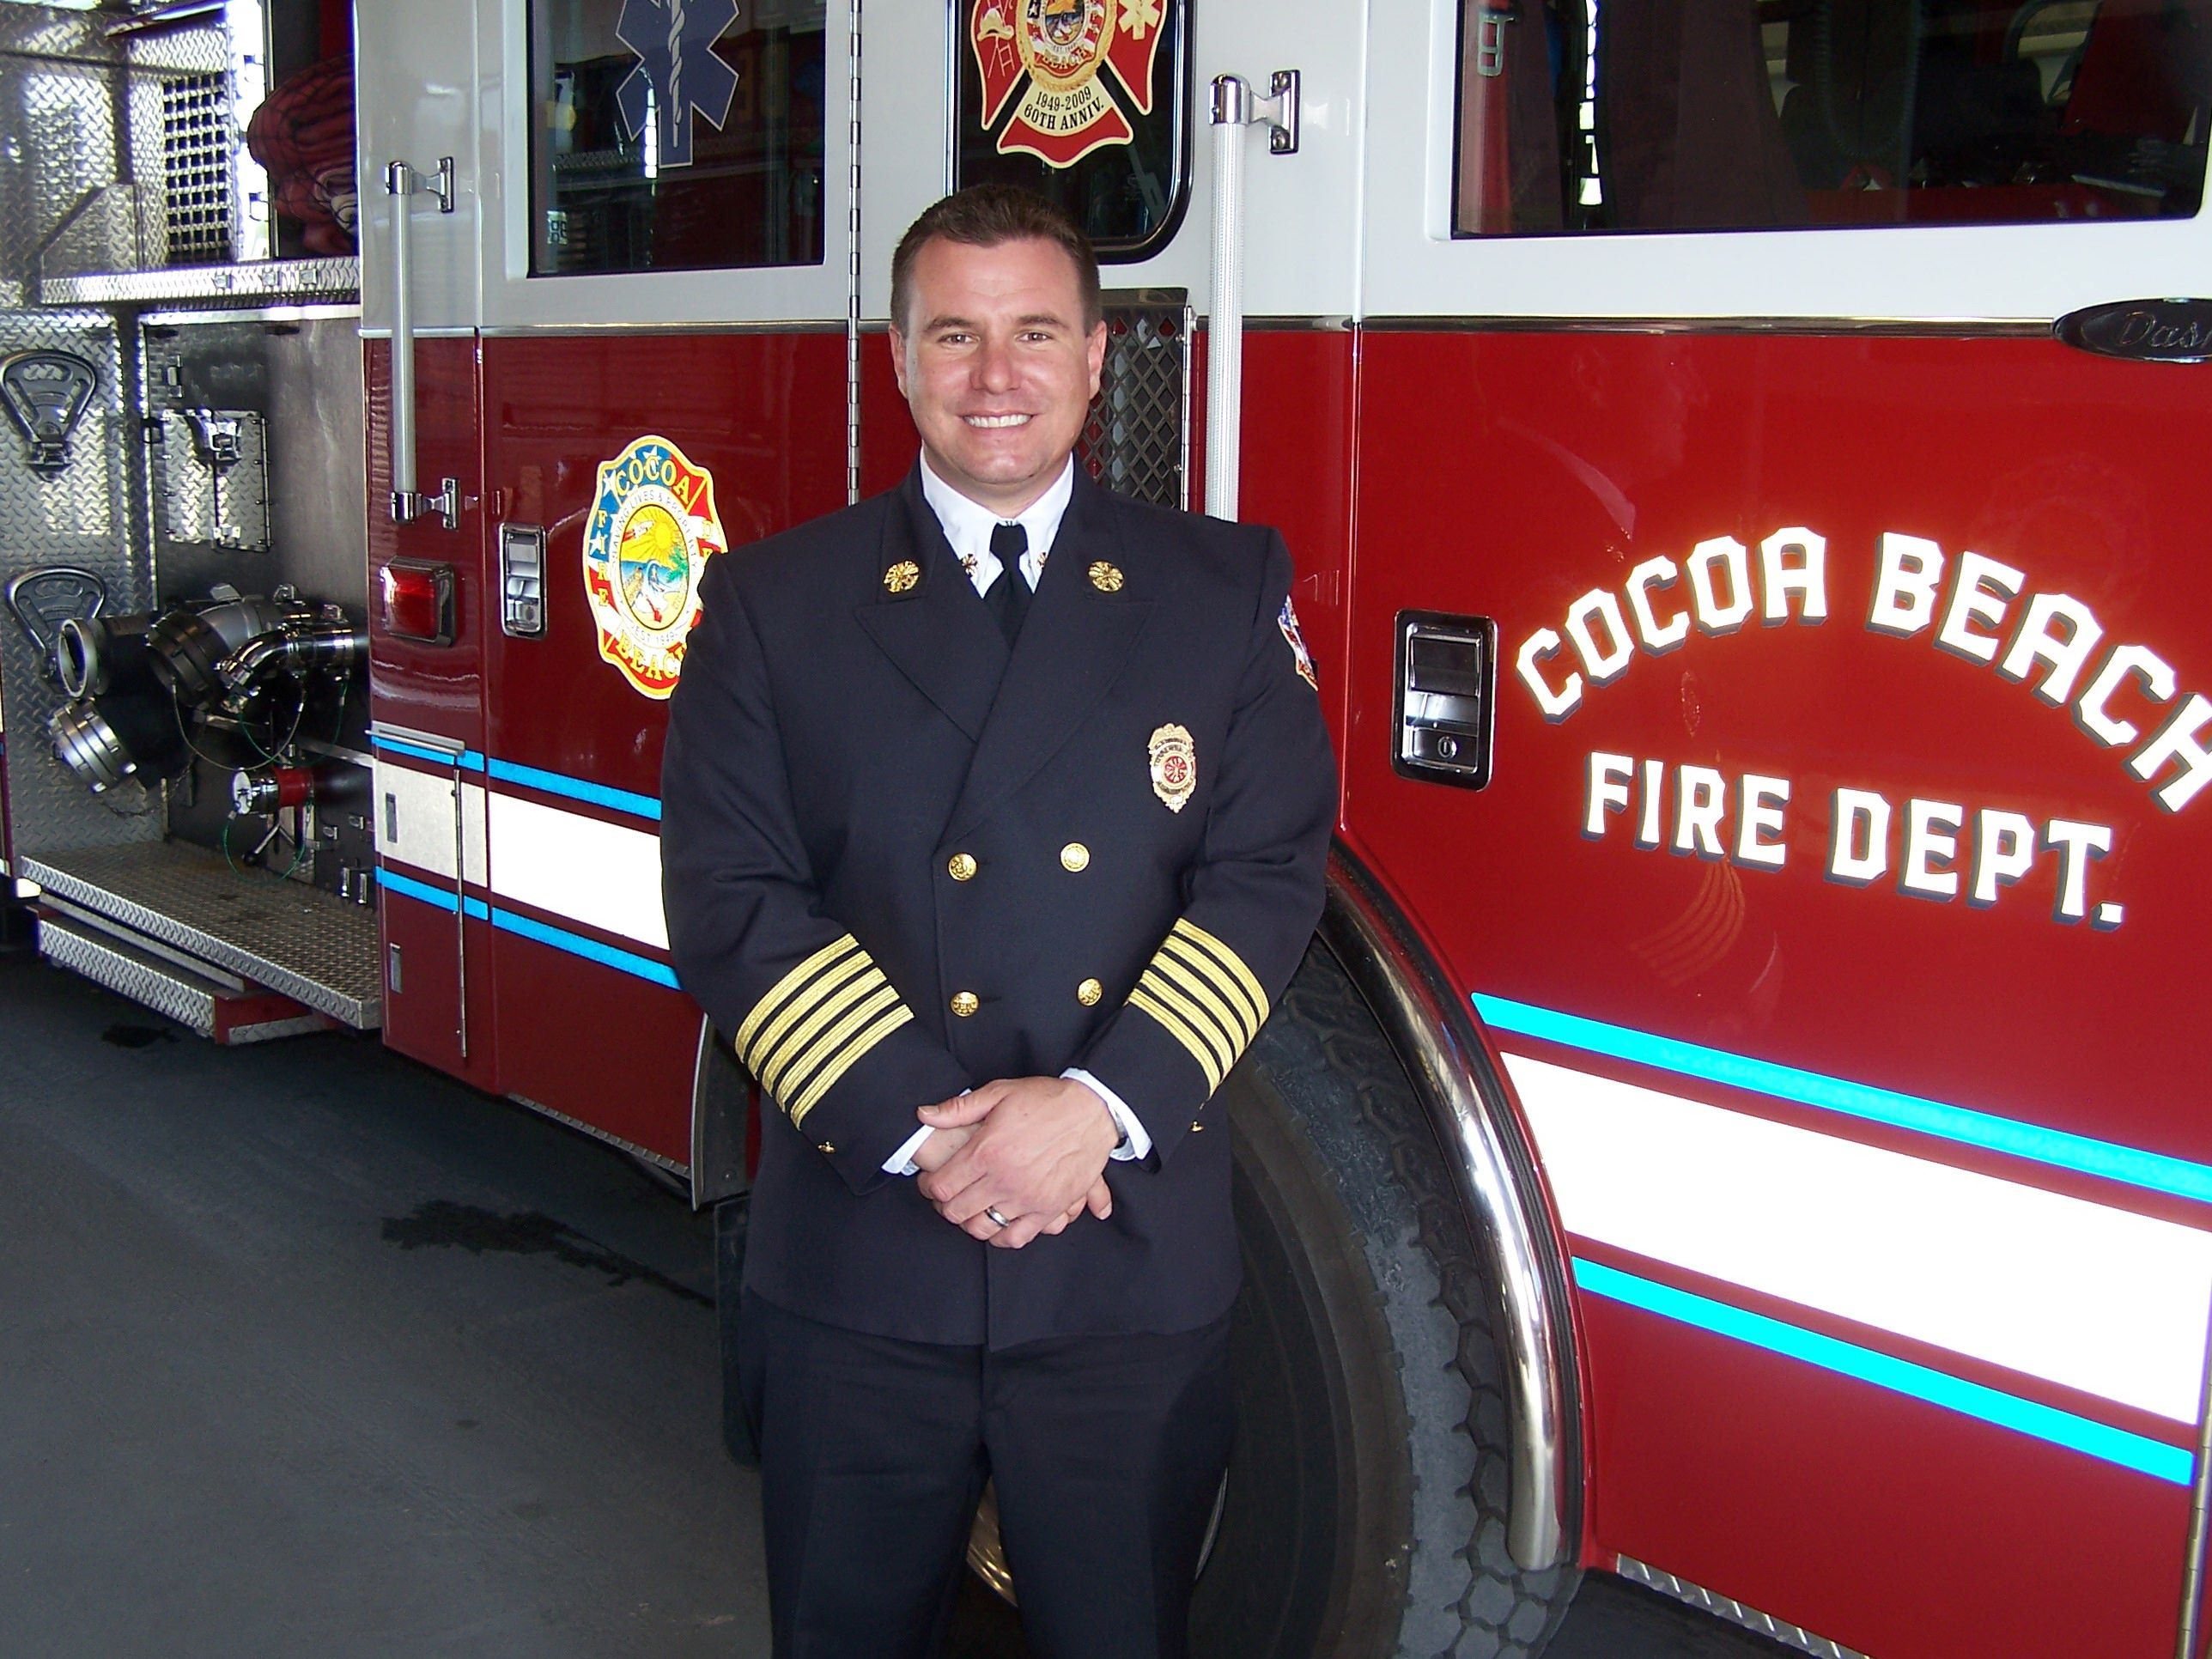 Fire Chief Ryan Duckworth